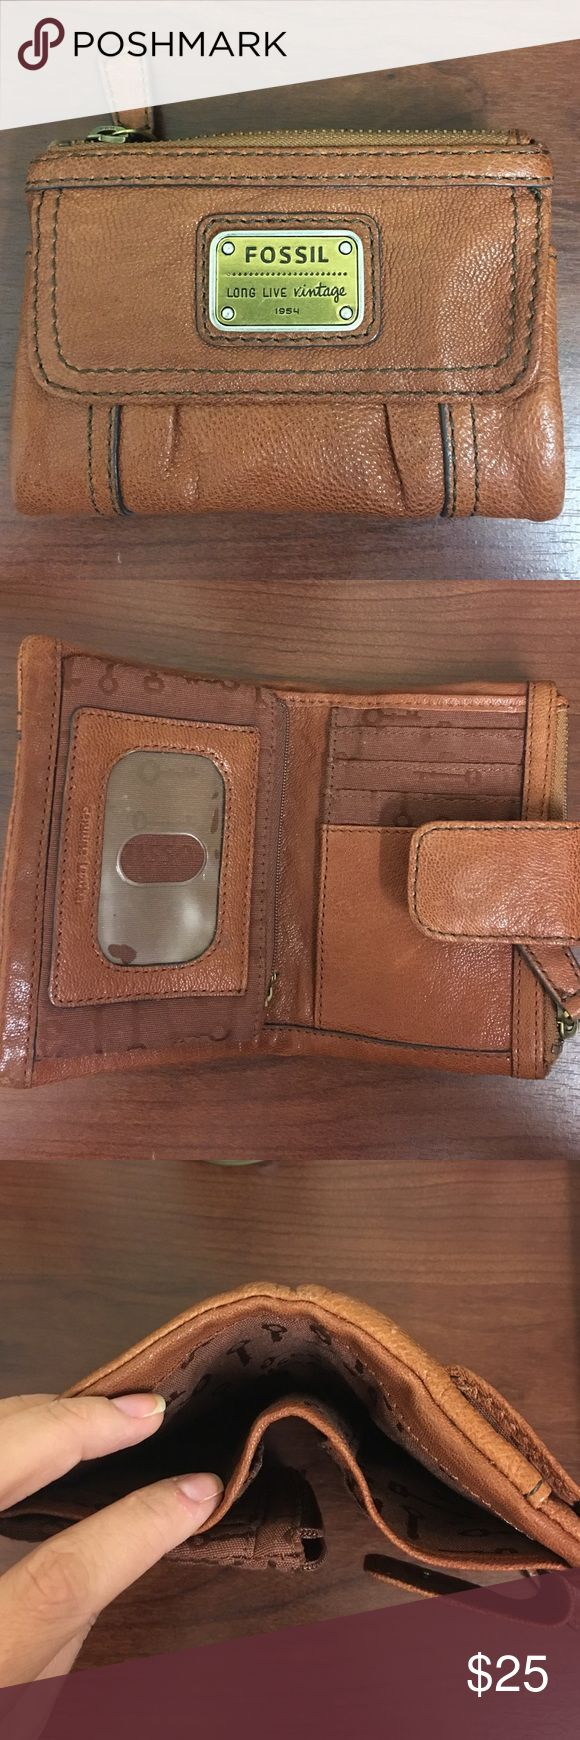 Fossil Wallet Lightly used women's Fossil Wallet Fossil Bags Wallets